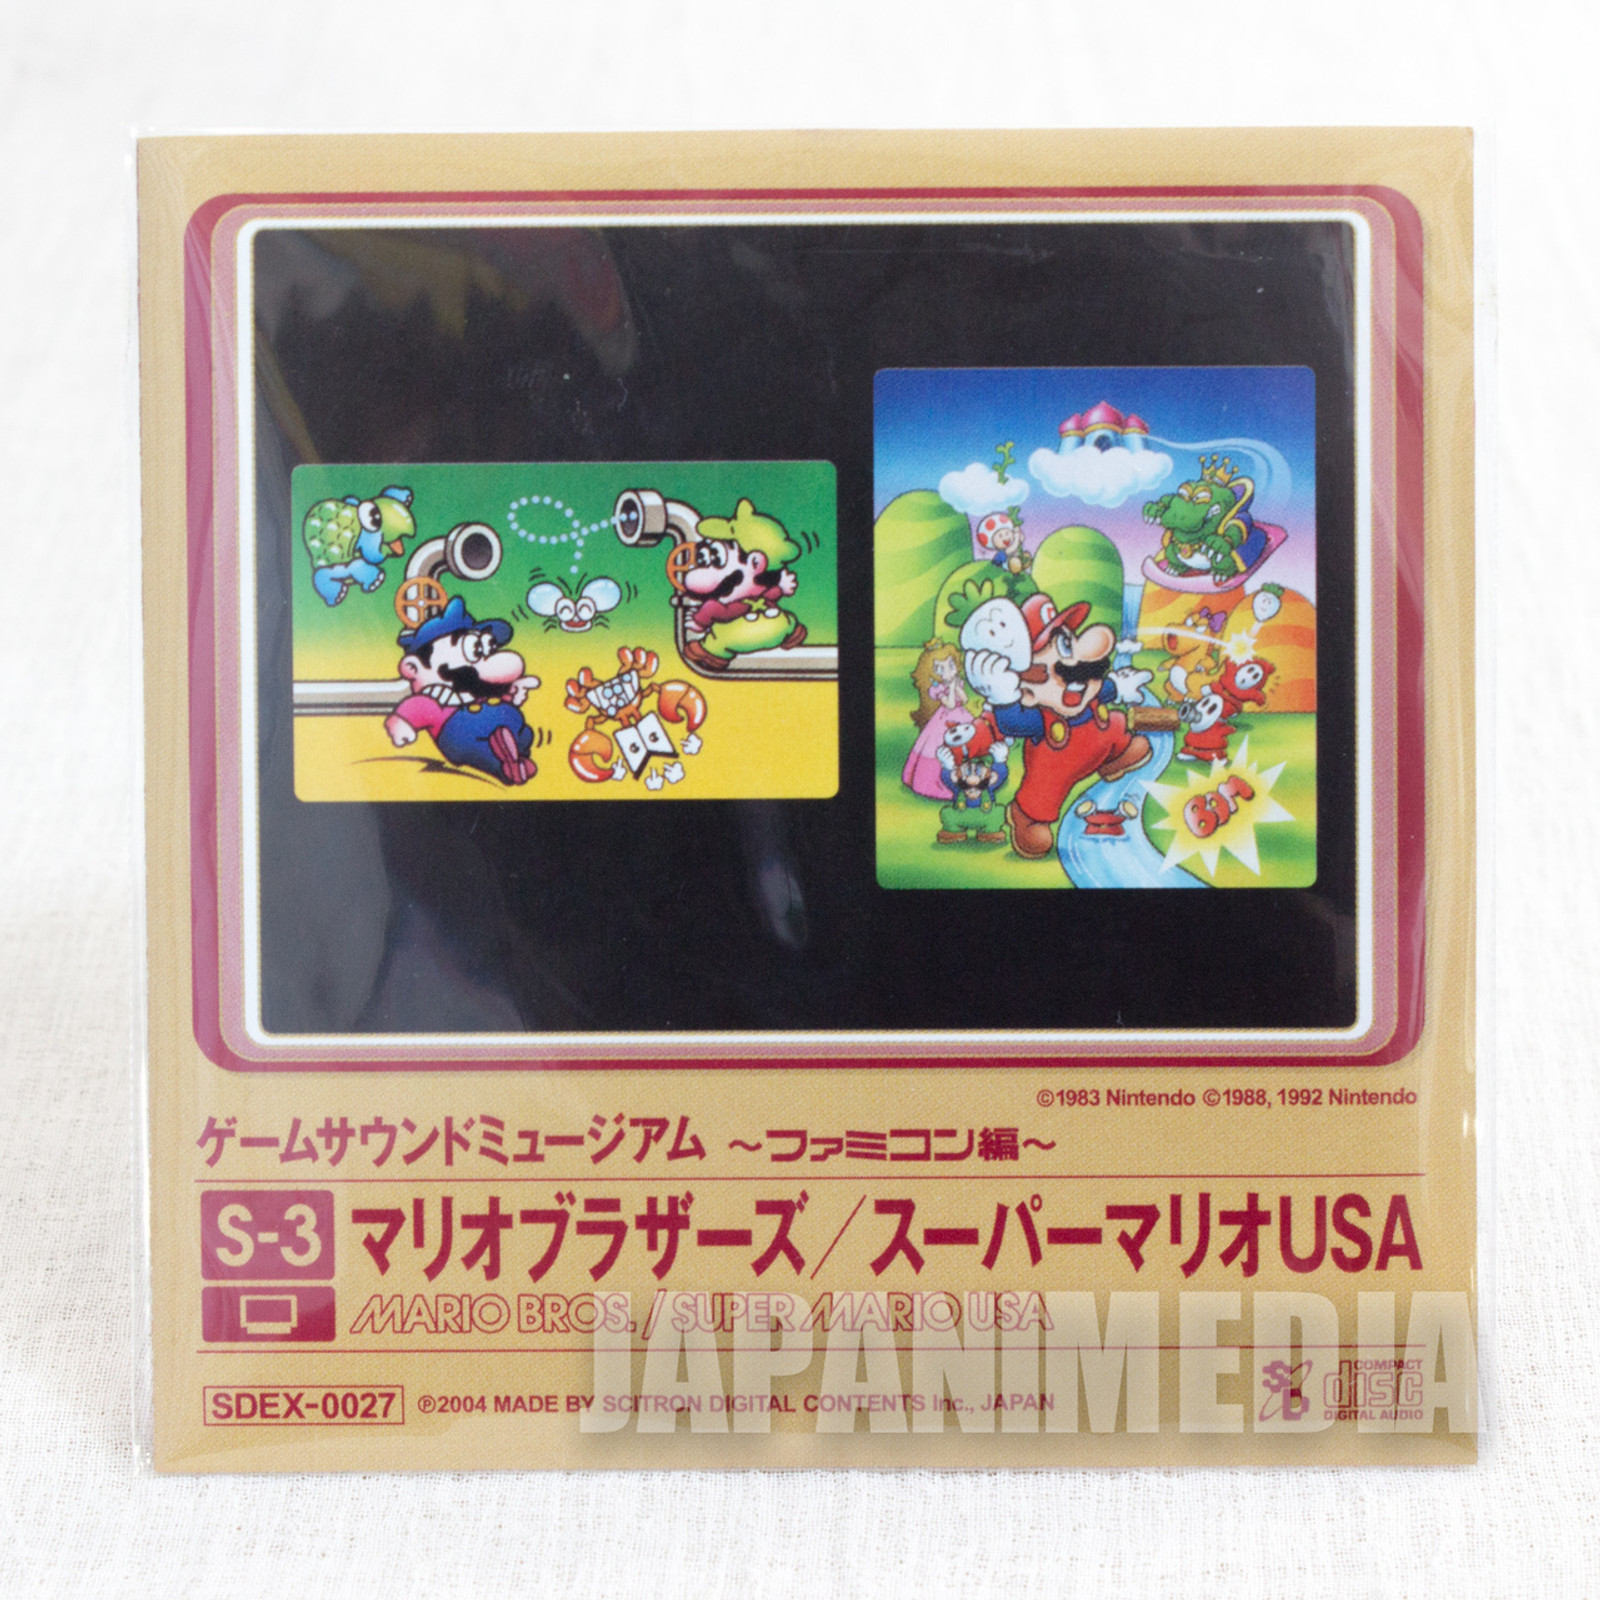 Mario Bros. / Super Mario USA Game Sound Museum Nintendo Music 8cm CD JAPAN